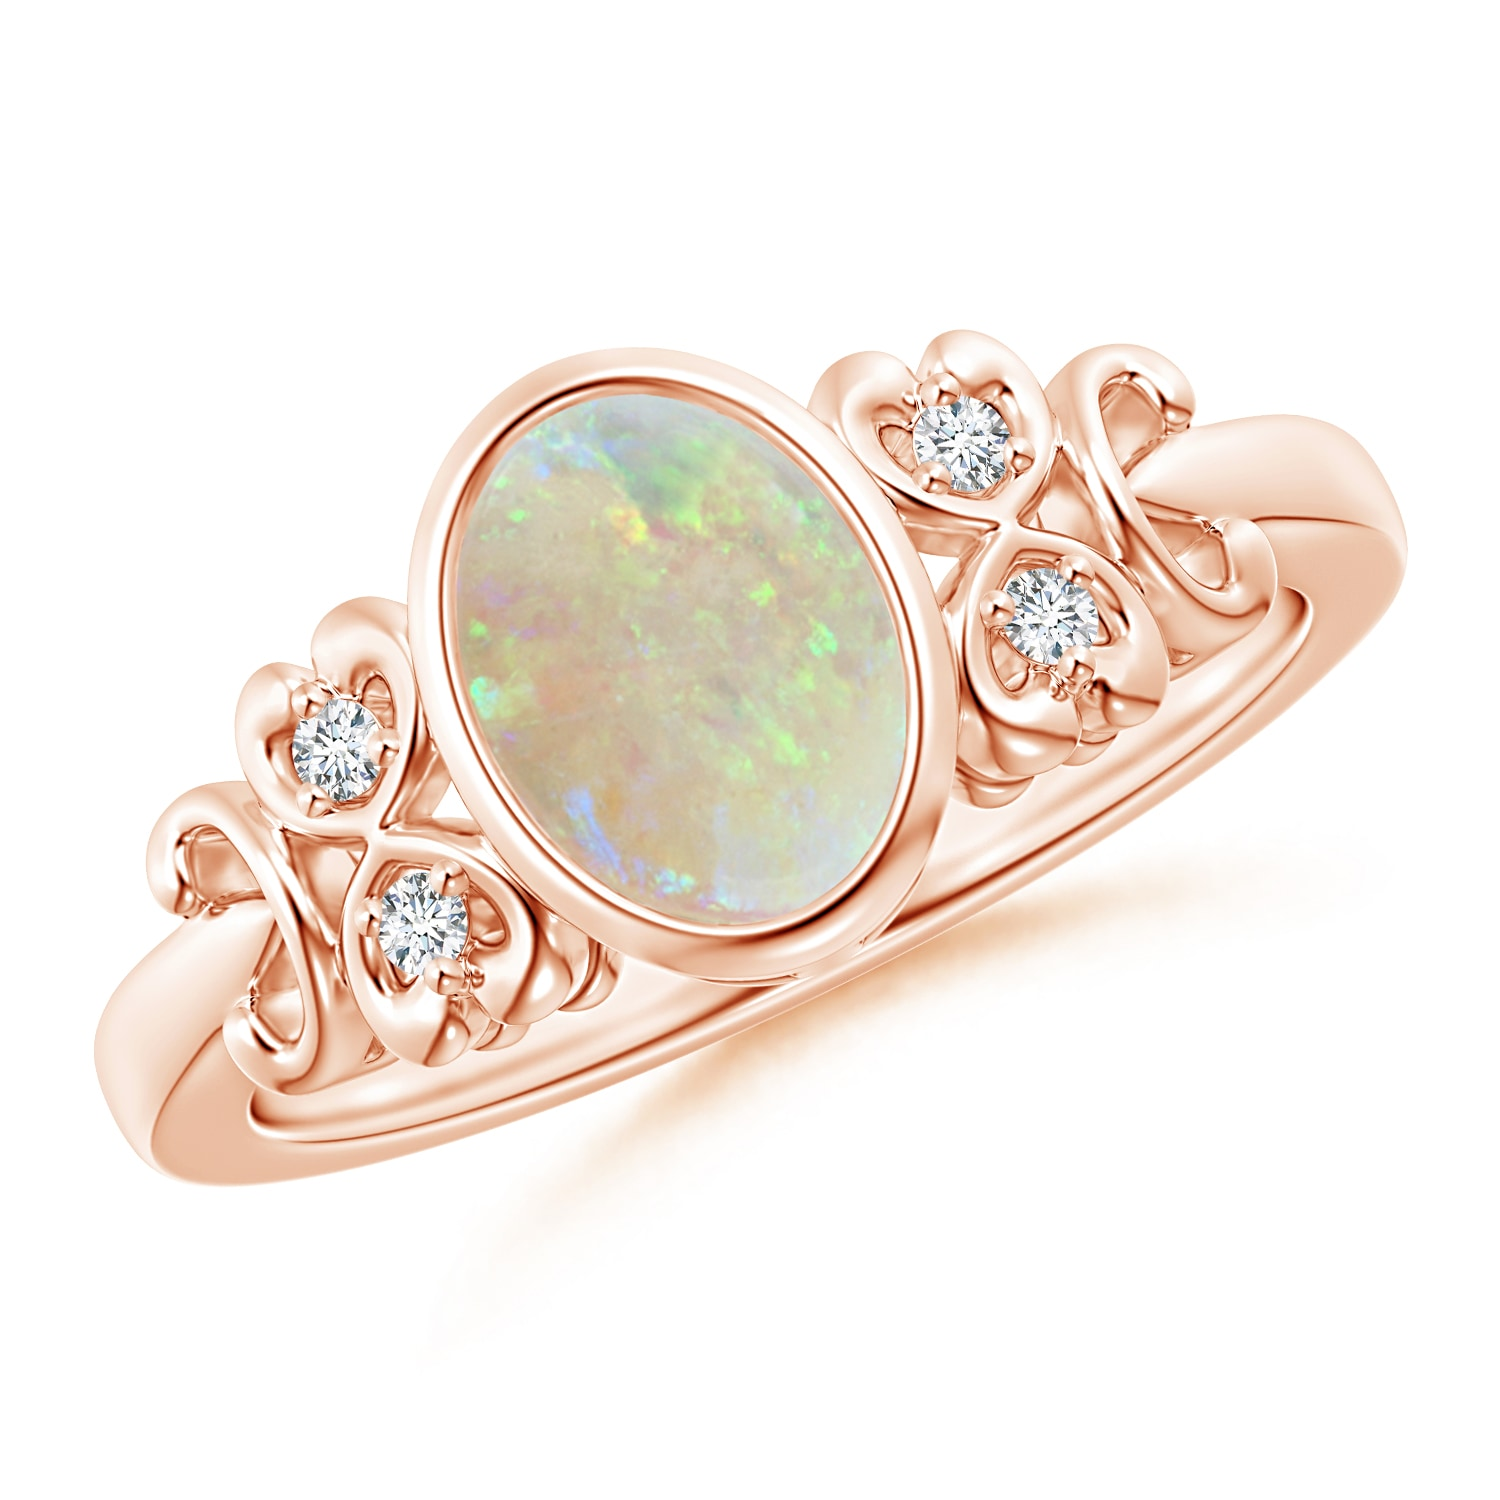 Vintage Oval Opal Bezel Ring with Diamond Accents - Angara.com